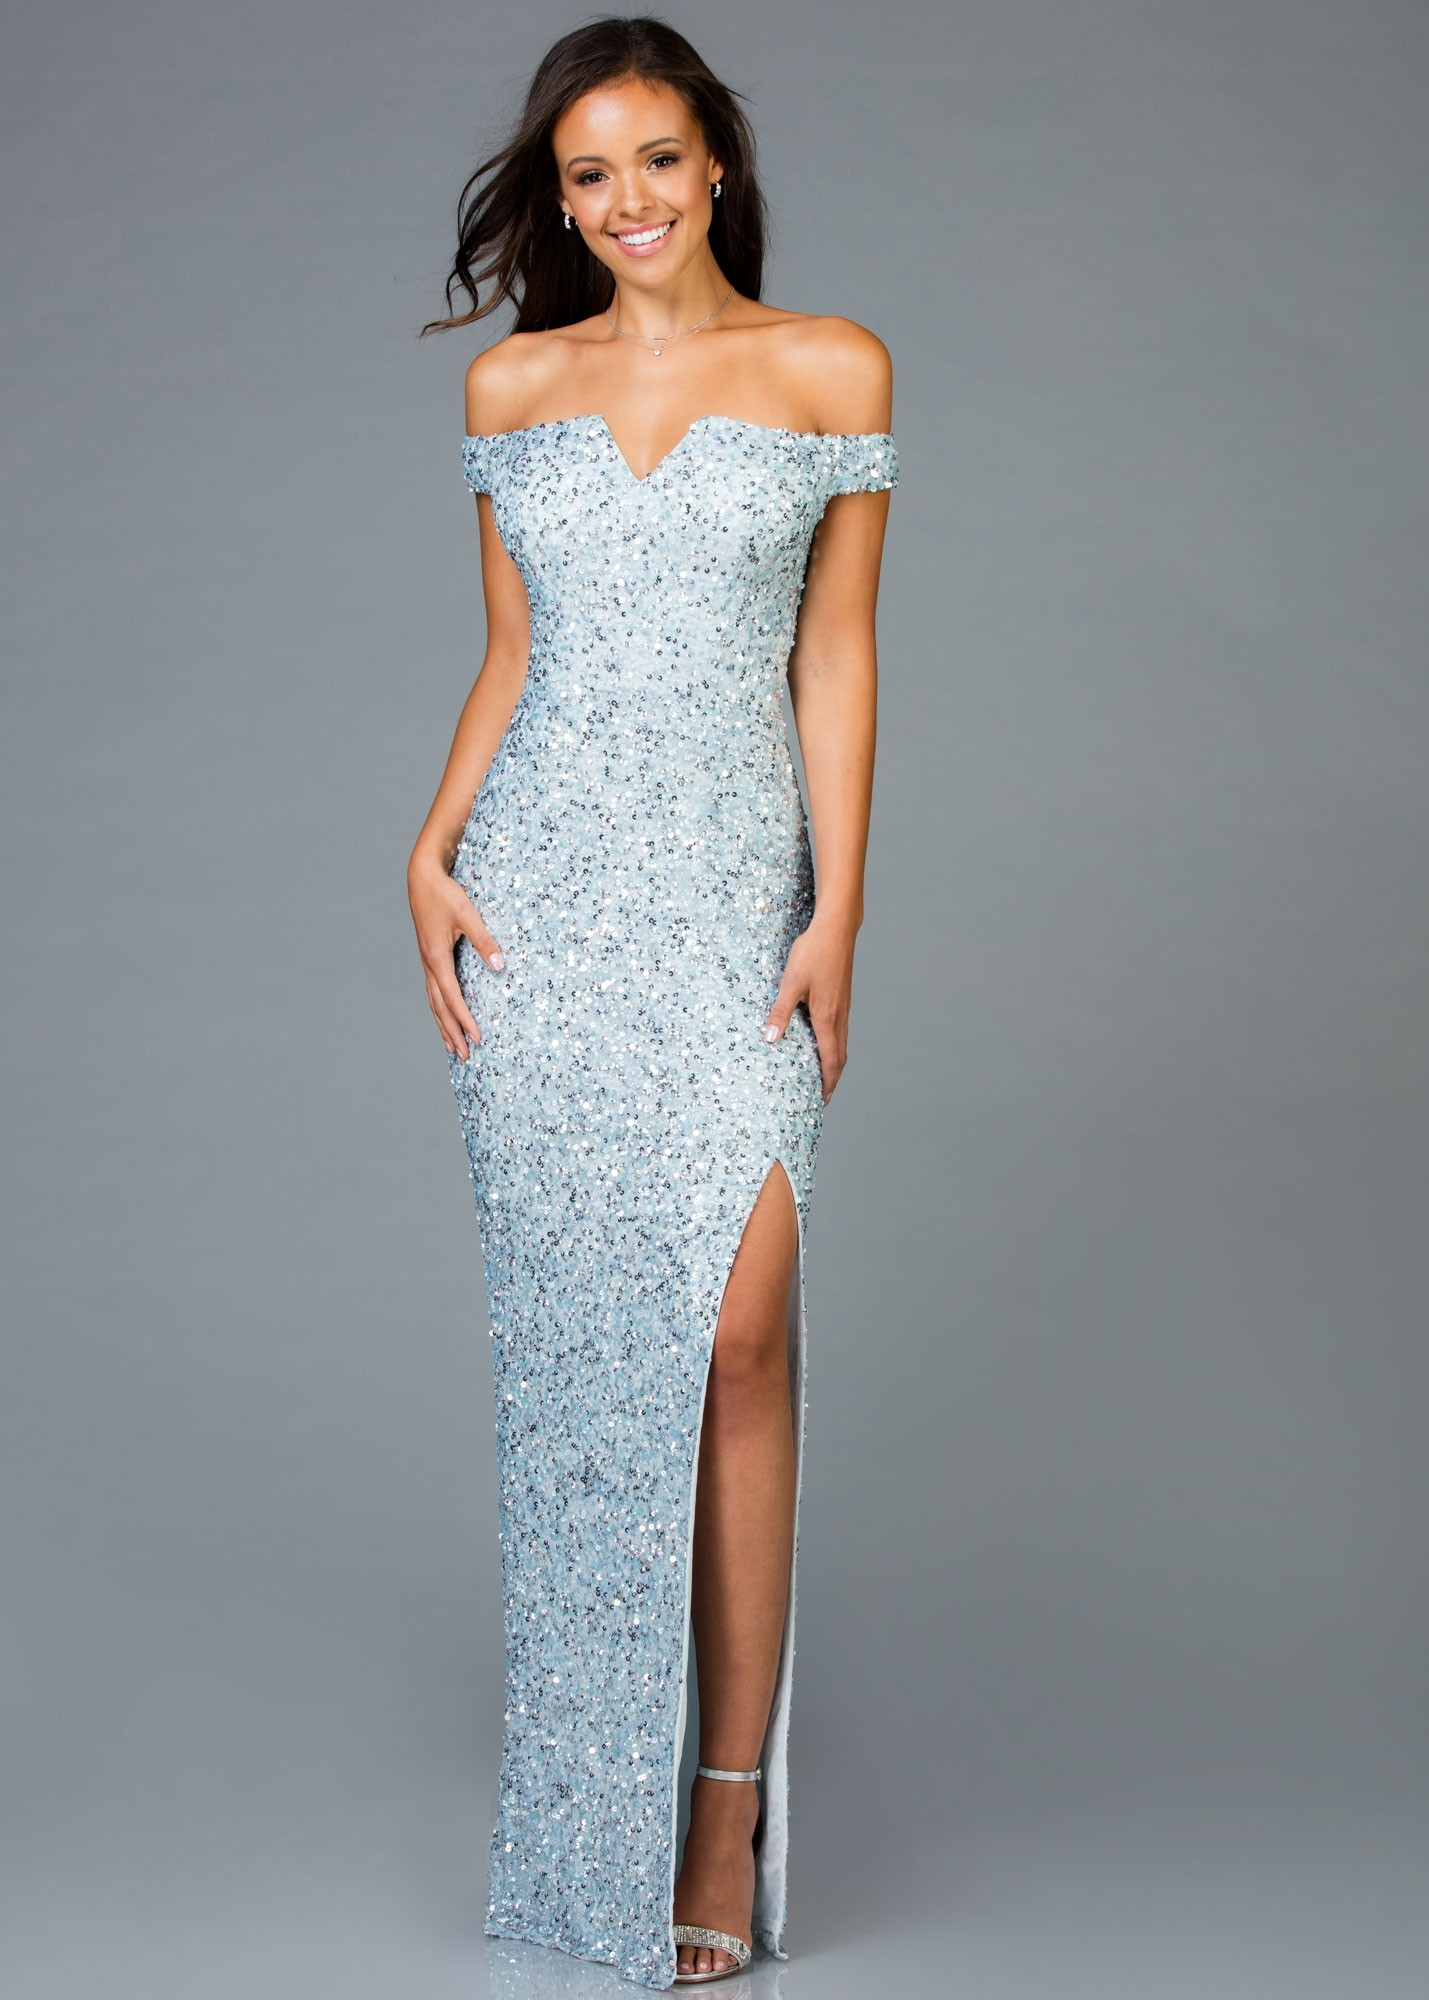 Scala 48985 Sequin Beaded Off-The-Shoulder Gown